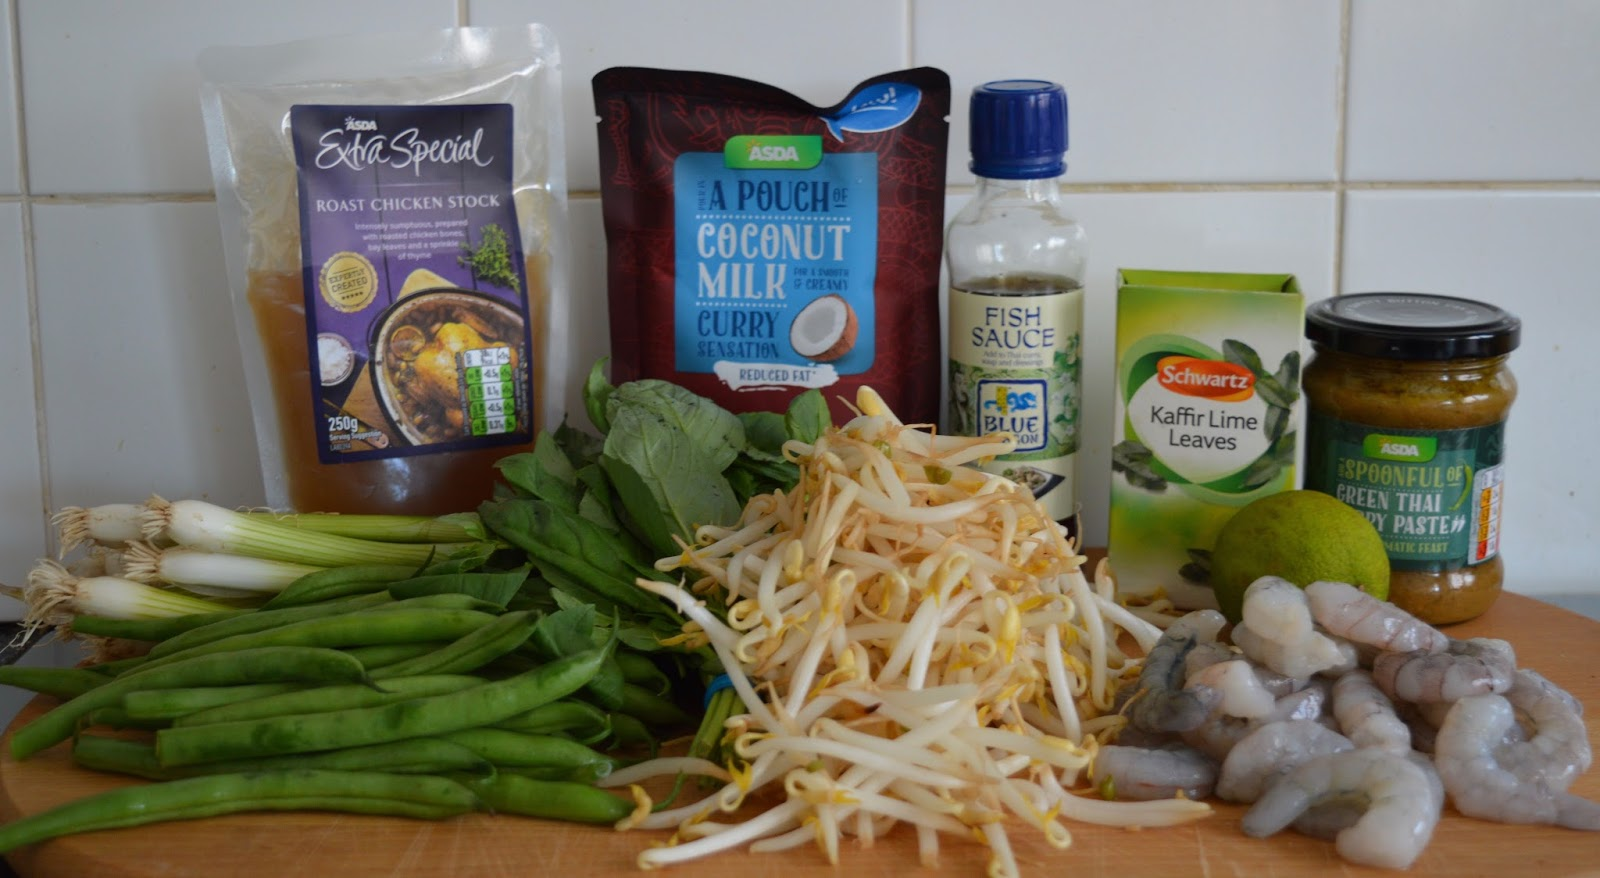 Super easy Thai Prawn Broth in less than 10 minutes - 330 kcals per portion